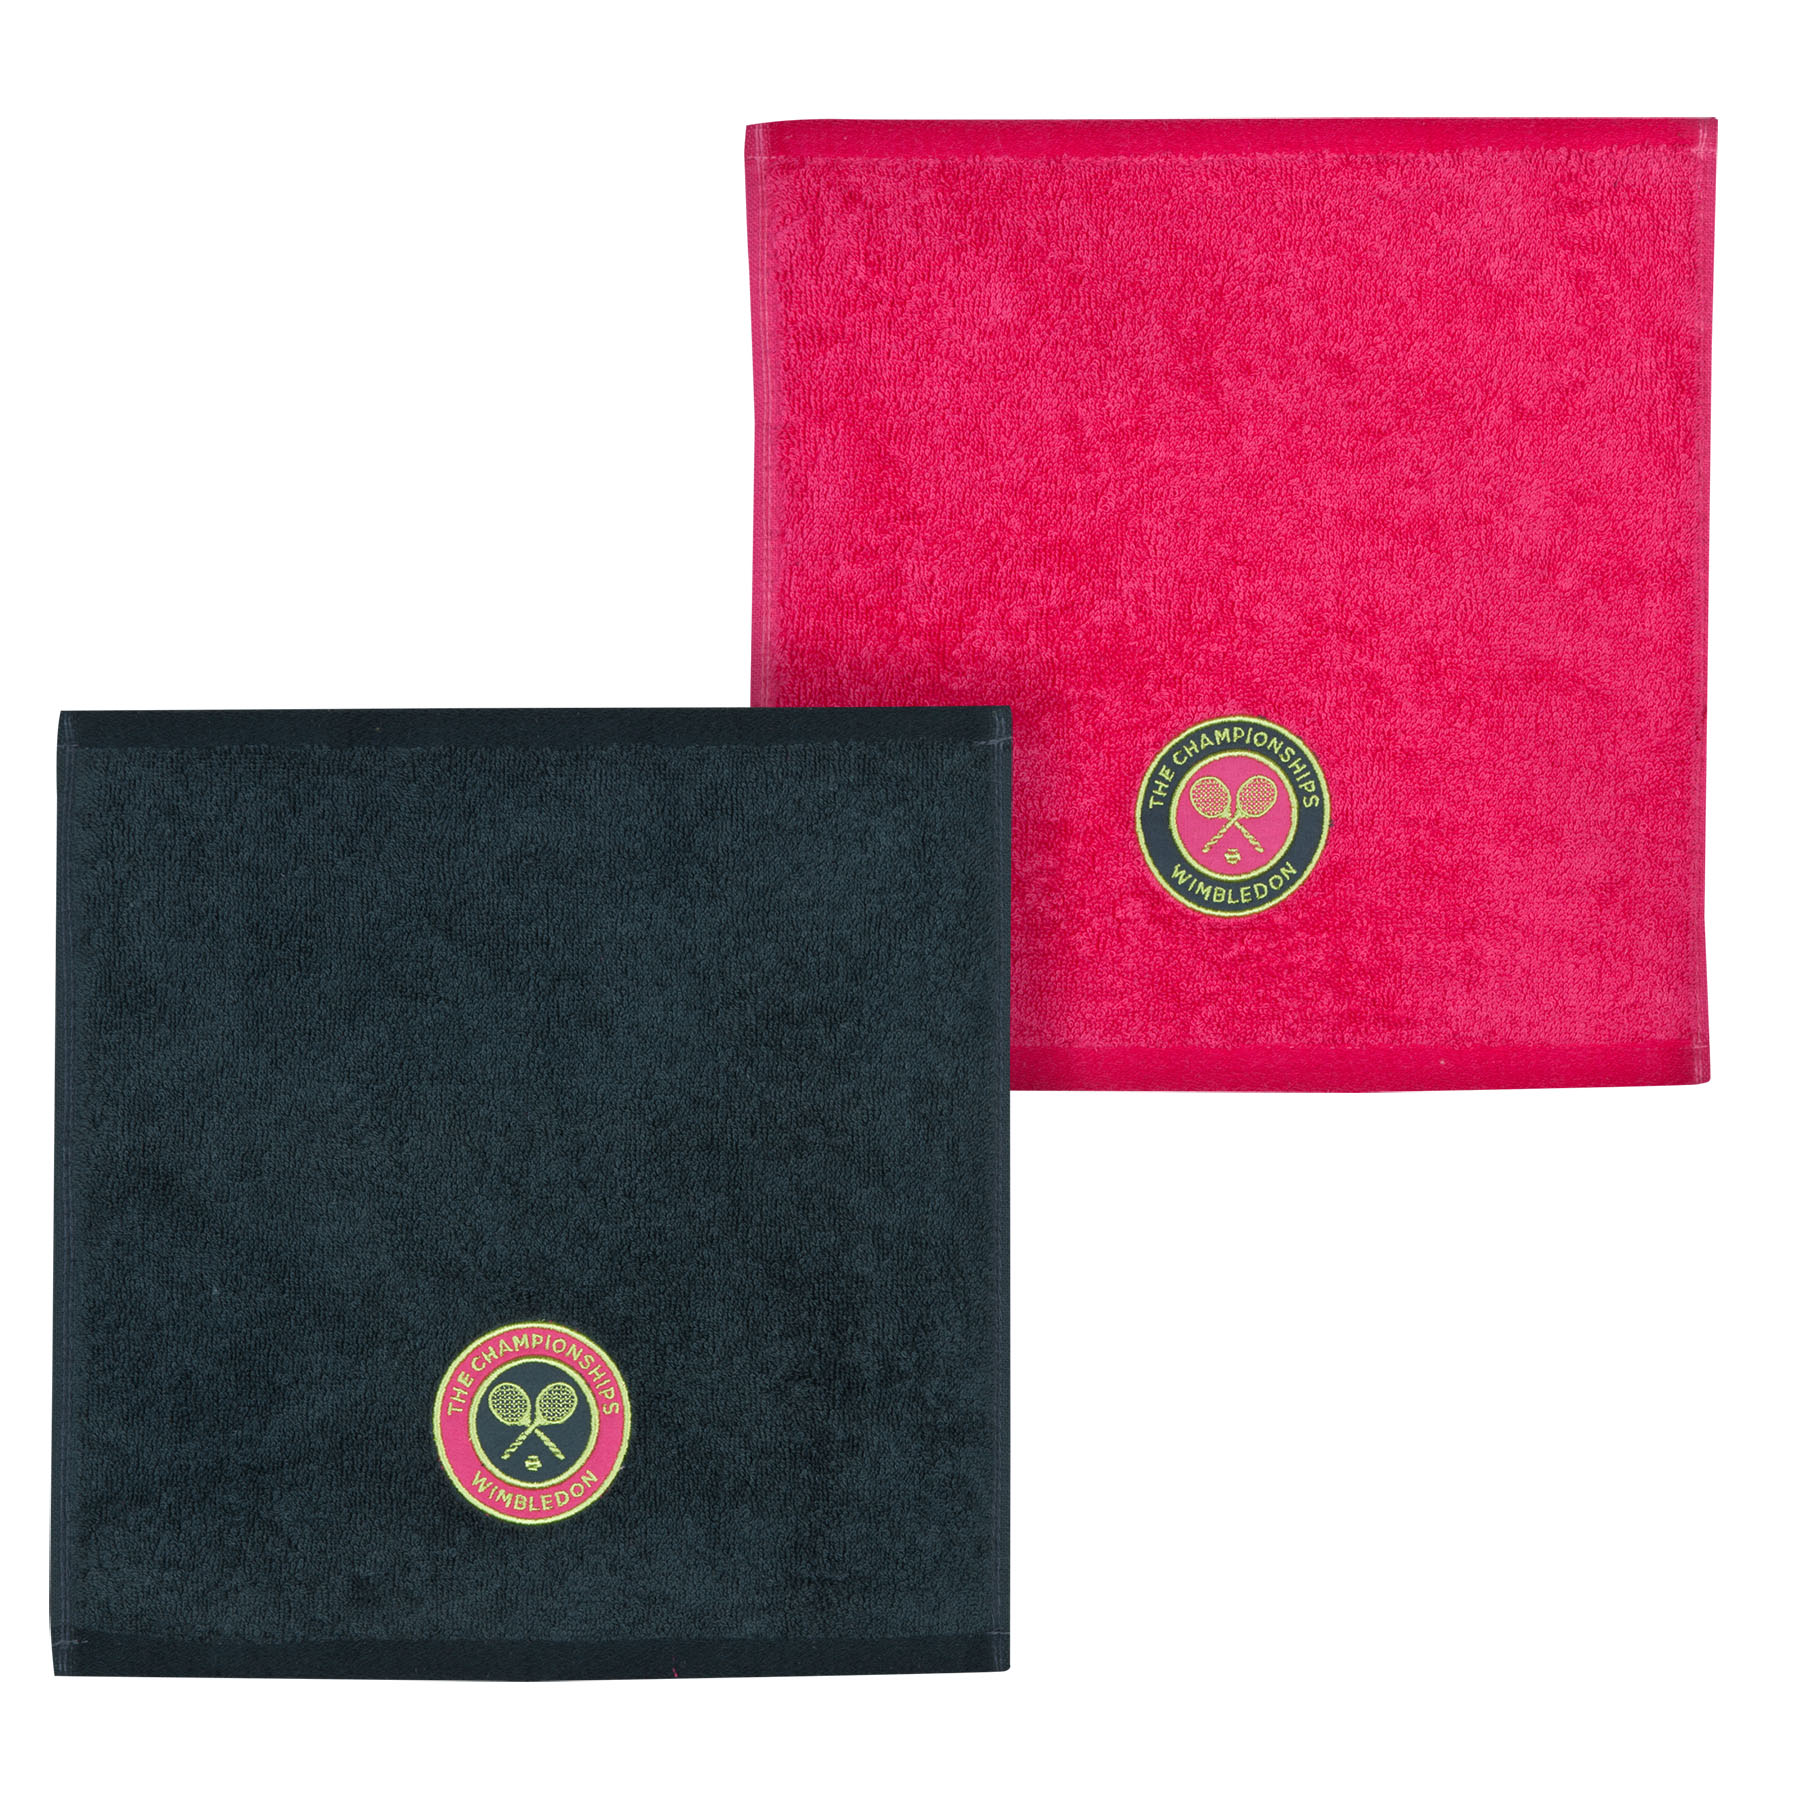 Wimbledon Ladies 2015 Face Cloth Double Pack - Pink/Charcoal